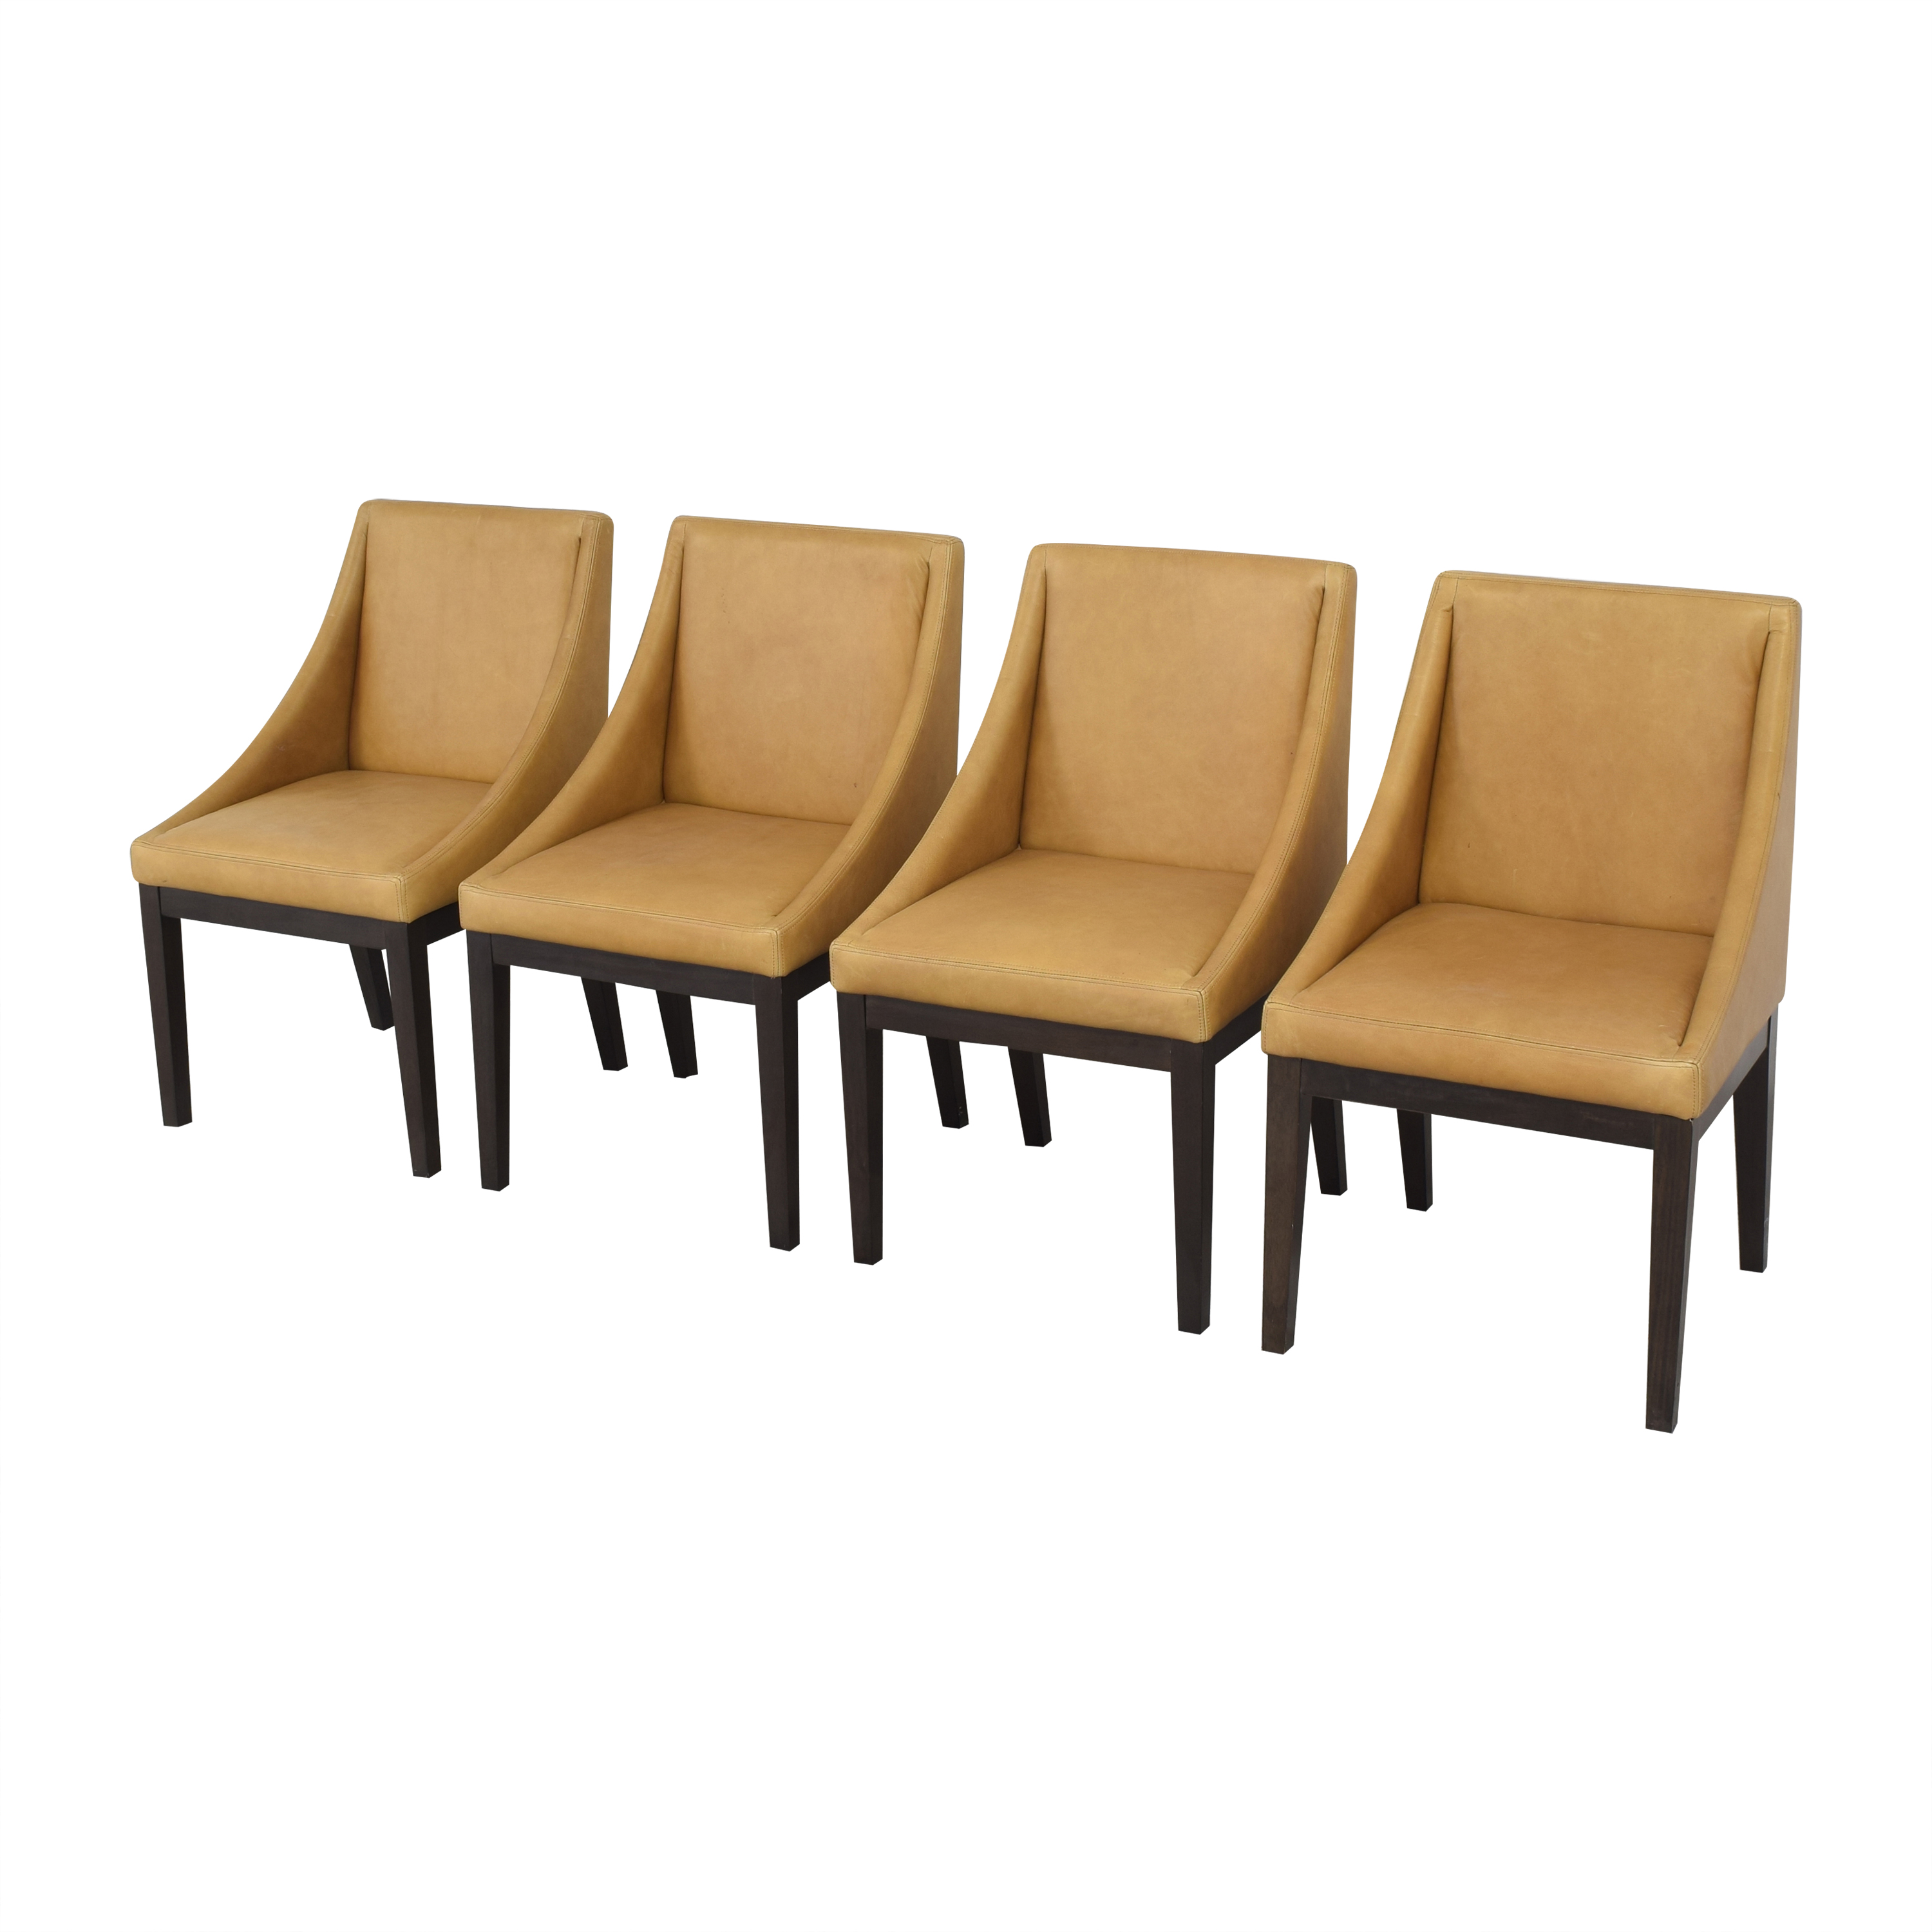 West Elm West Elm Curved Upholstered Chairs nj